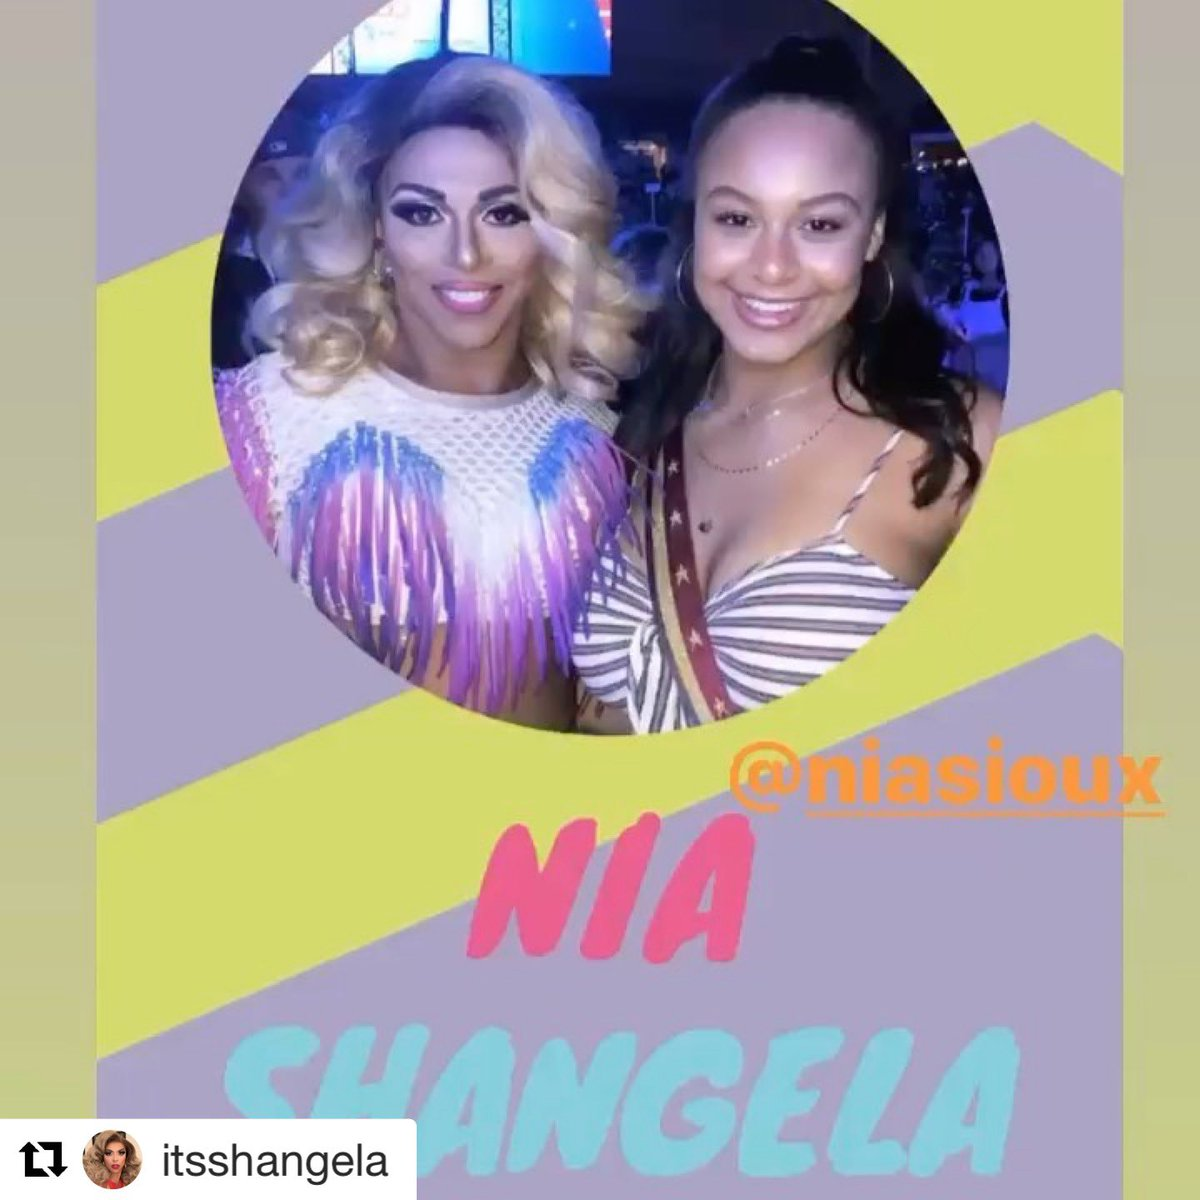 The Death Drop Divas are reuniting in a few minutes!!! Join @itsSHANGELA @niasioux 's IG LIVE at 4pm. https://t.co/j6SzoCpt7h